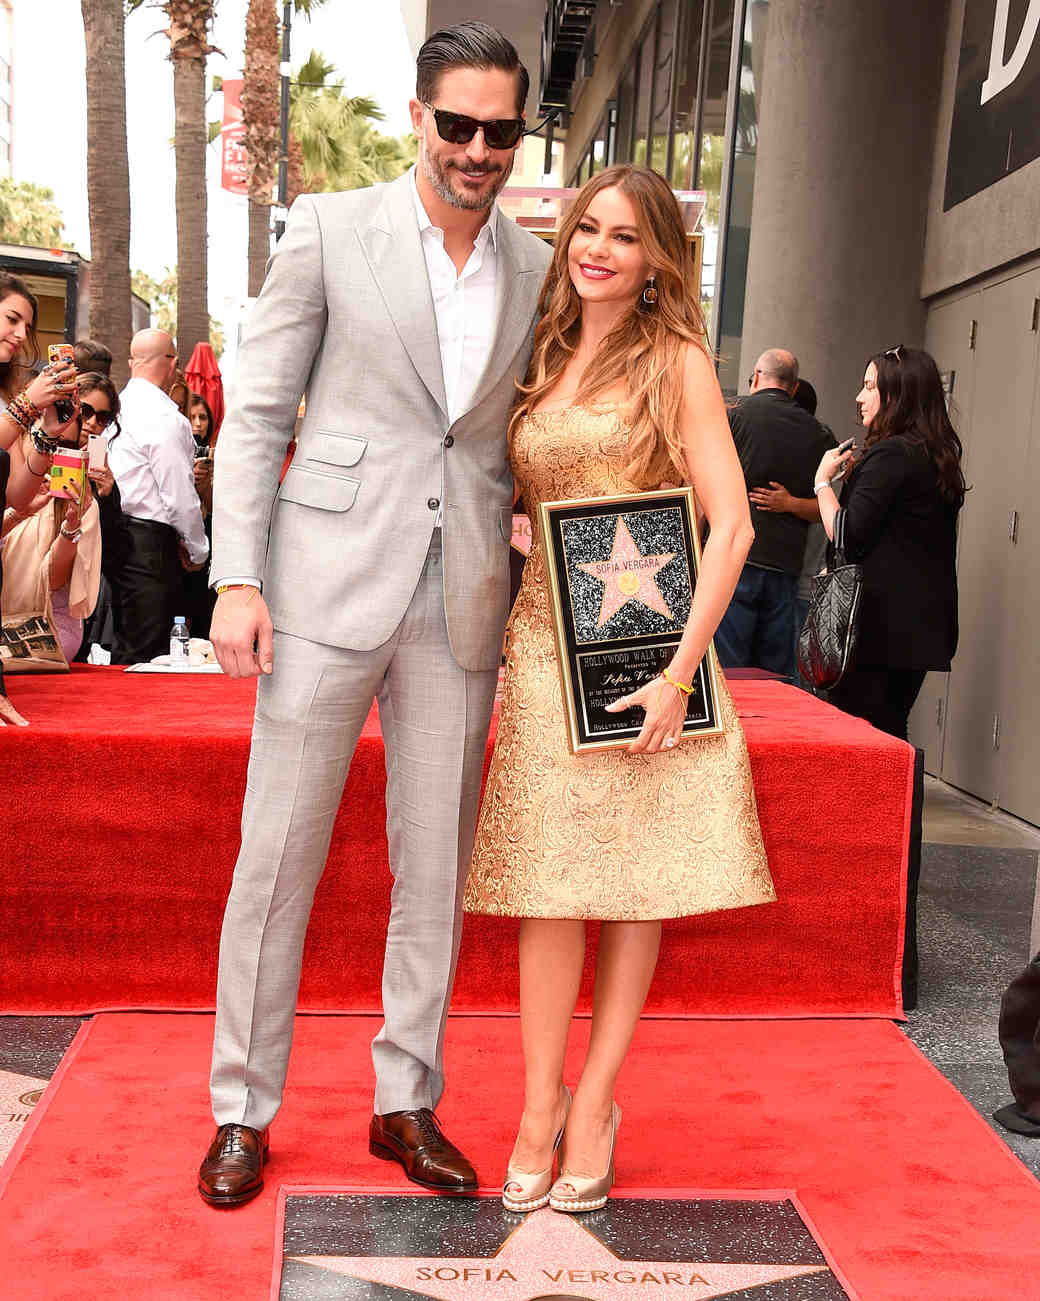 sofia-vergara-red-carpet-star-hollywood-walk-fame-with-joe-gold-romona-keveza-0815.jpg